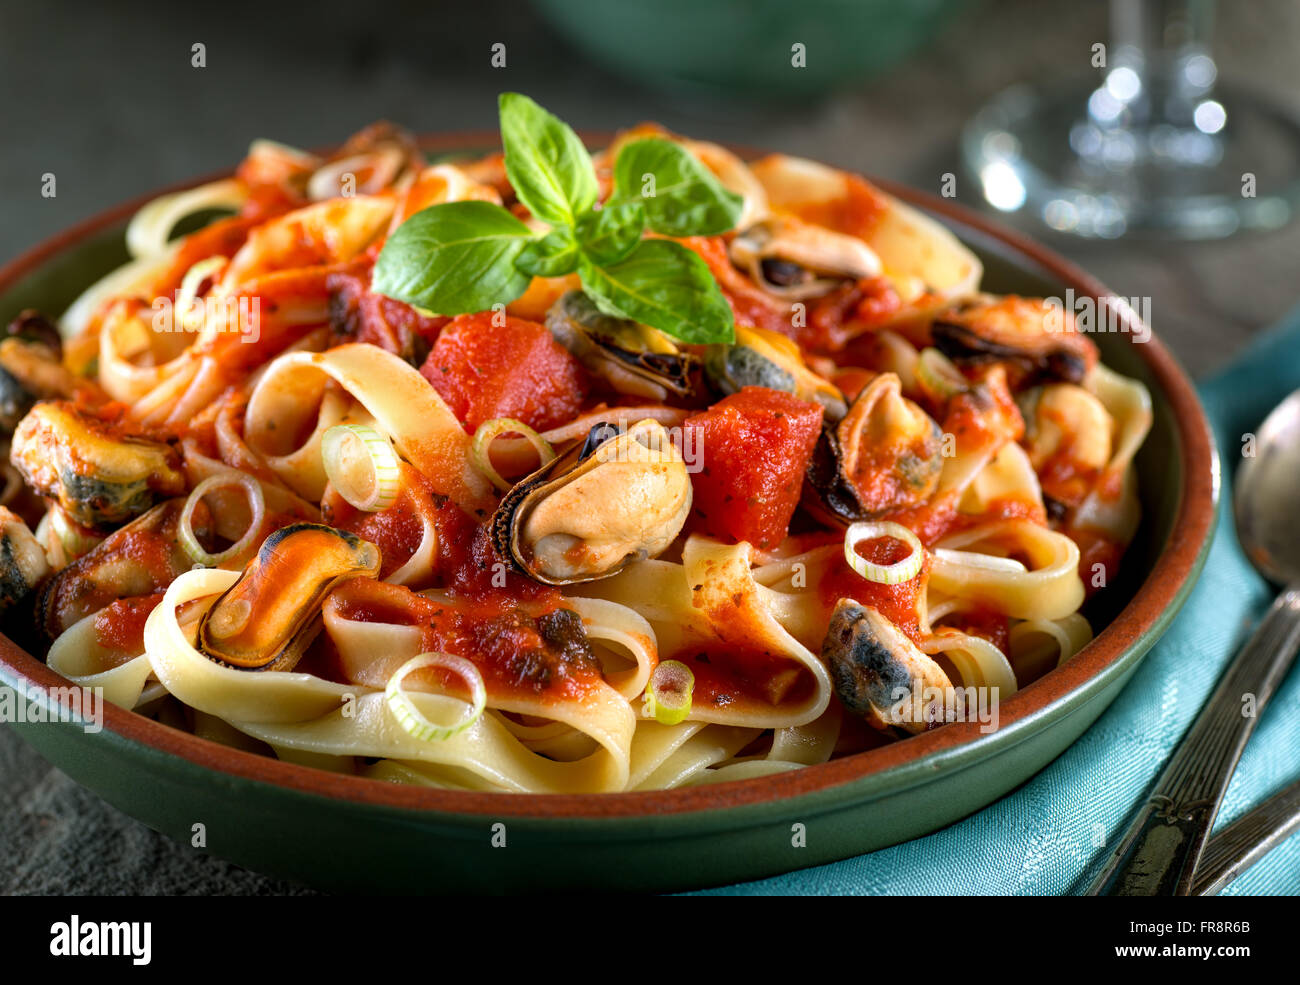 Delicious pasta with mussels in basil marinara sauce. Stock Photo